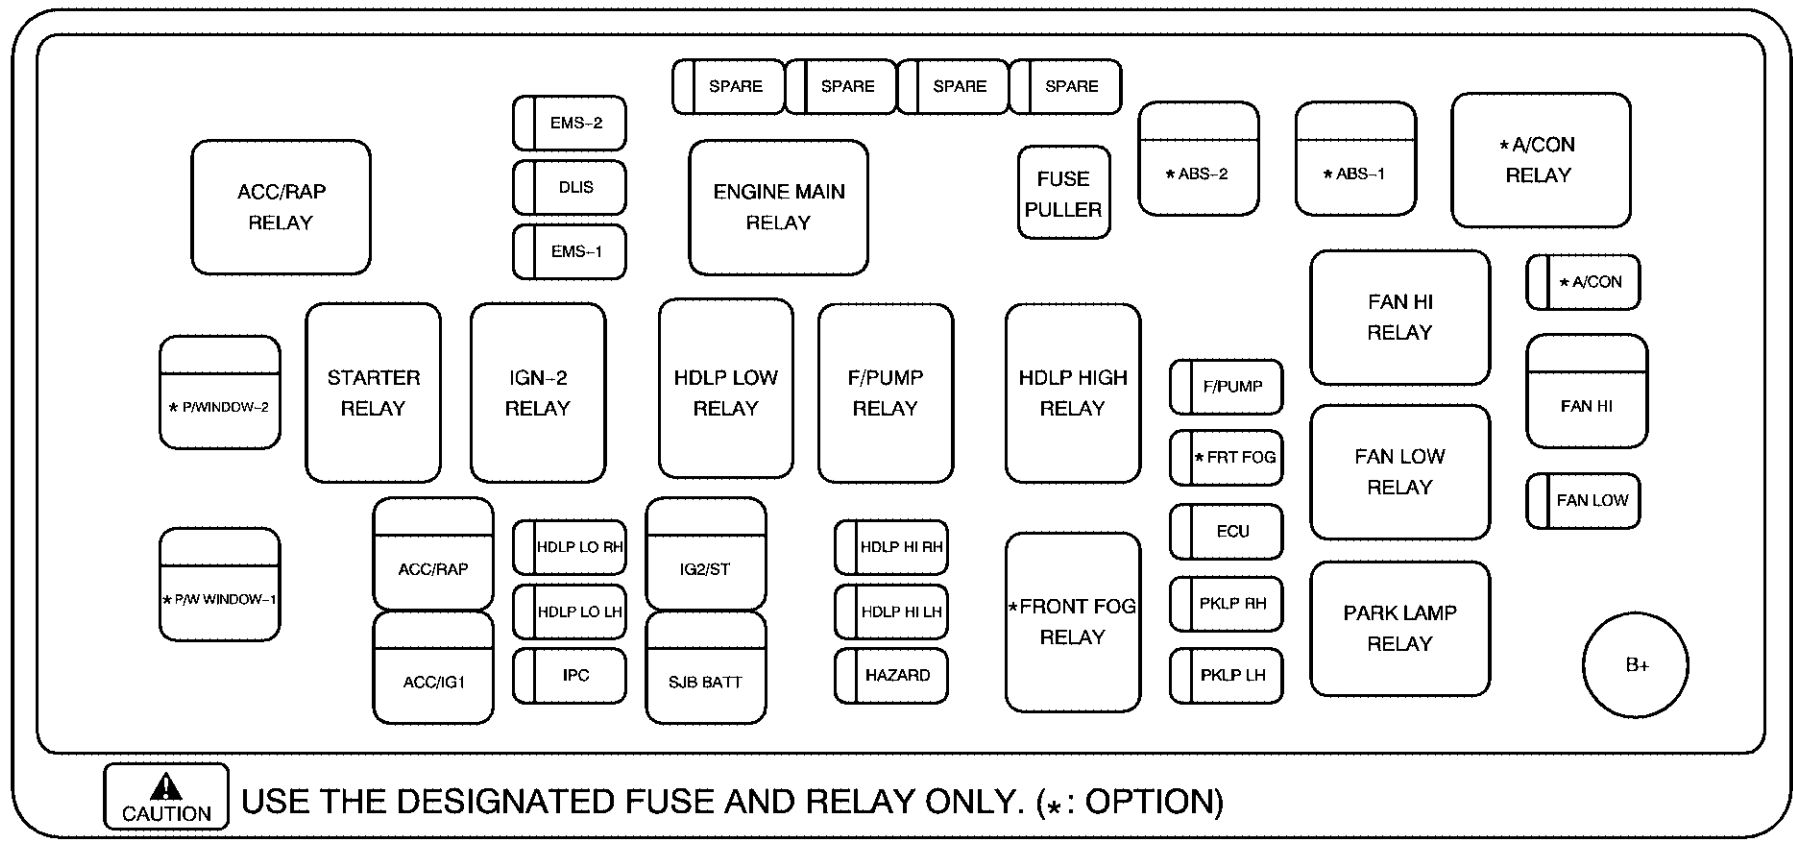 small resolution of 2009 chevy aveo fuse diagram wiring diagram used chevrolet aveo 2011 fuse box